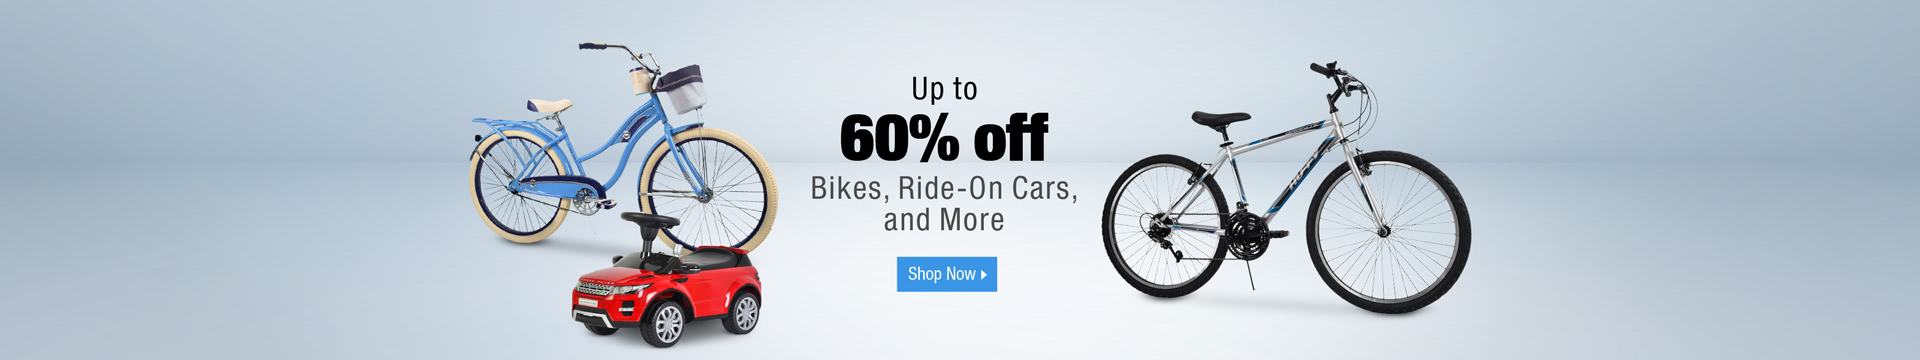 Up to 60% off Bikes, Ride-On Cars and More